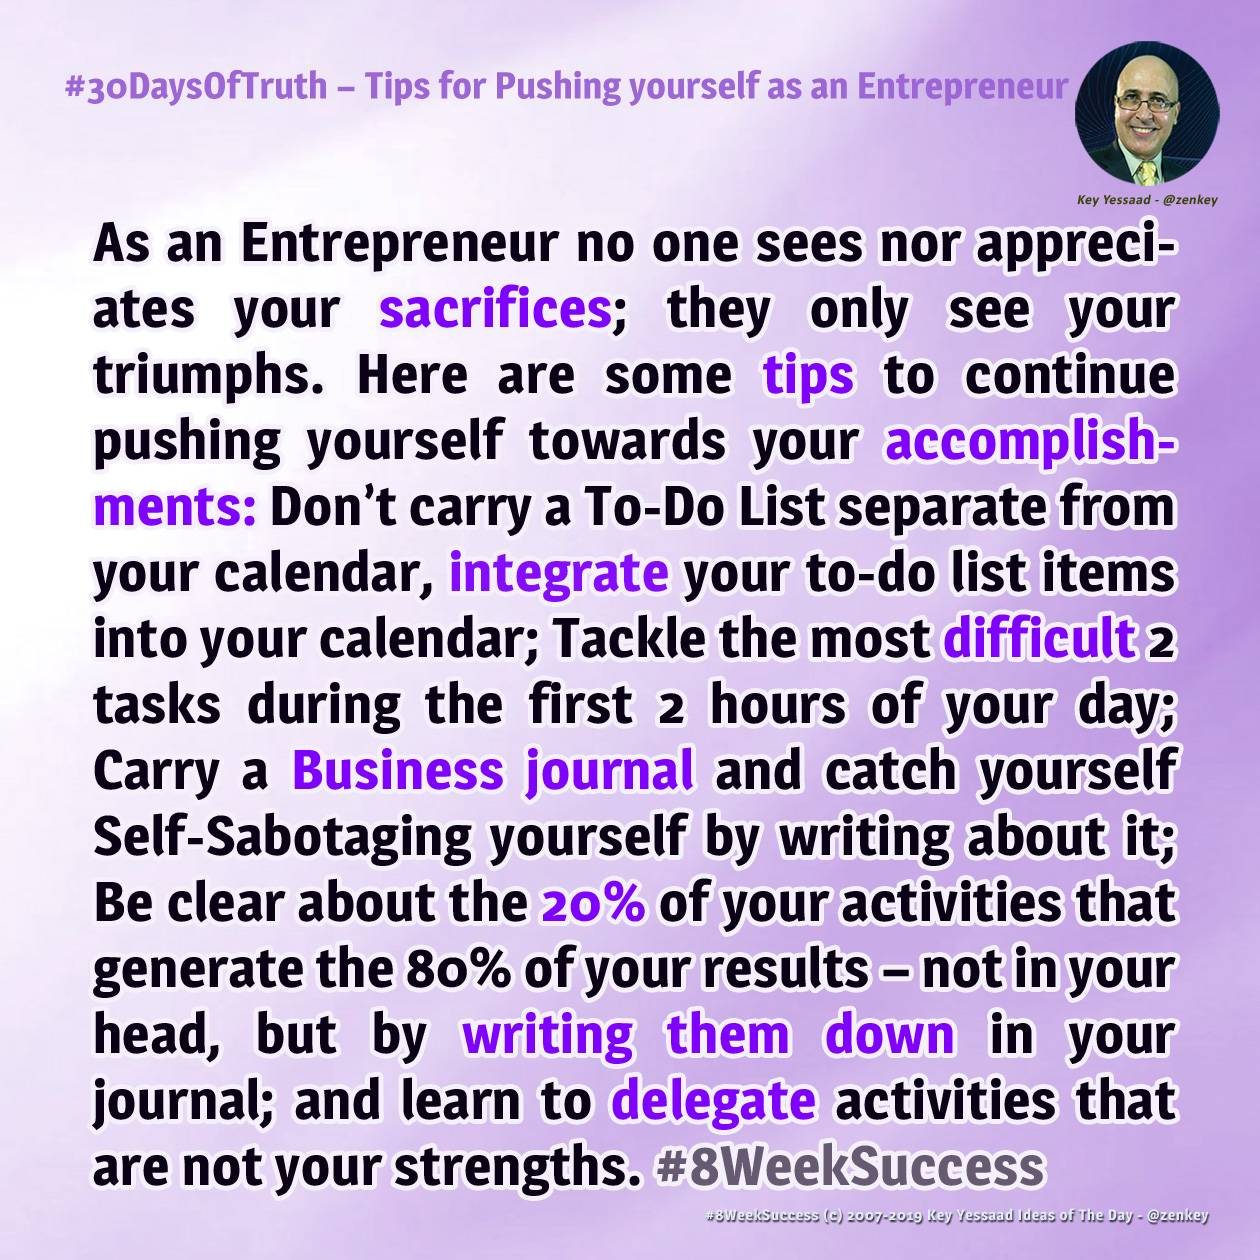 Tips for Pushing yourself as an Entrepreneur - #8WeekSuccess